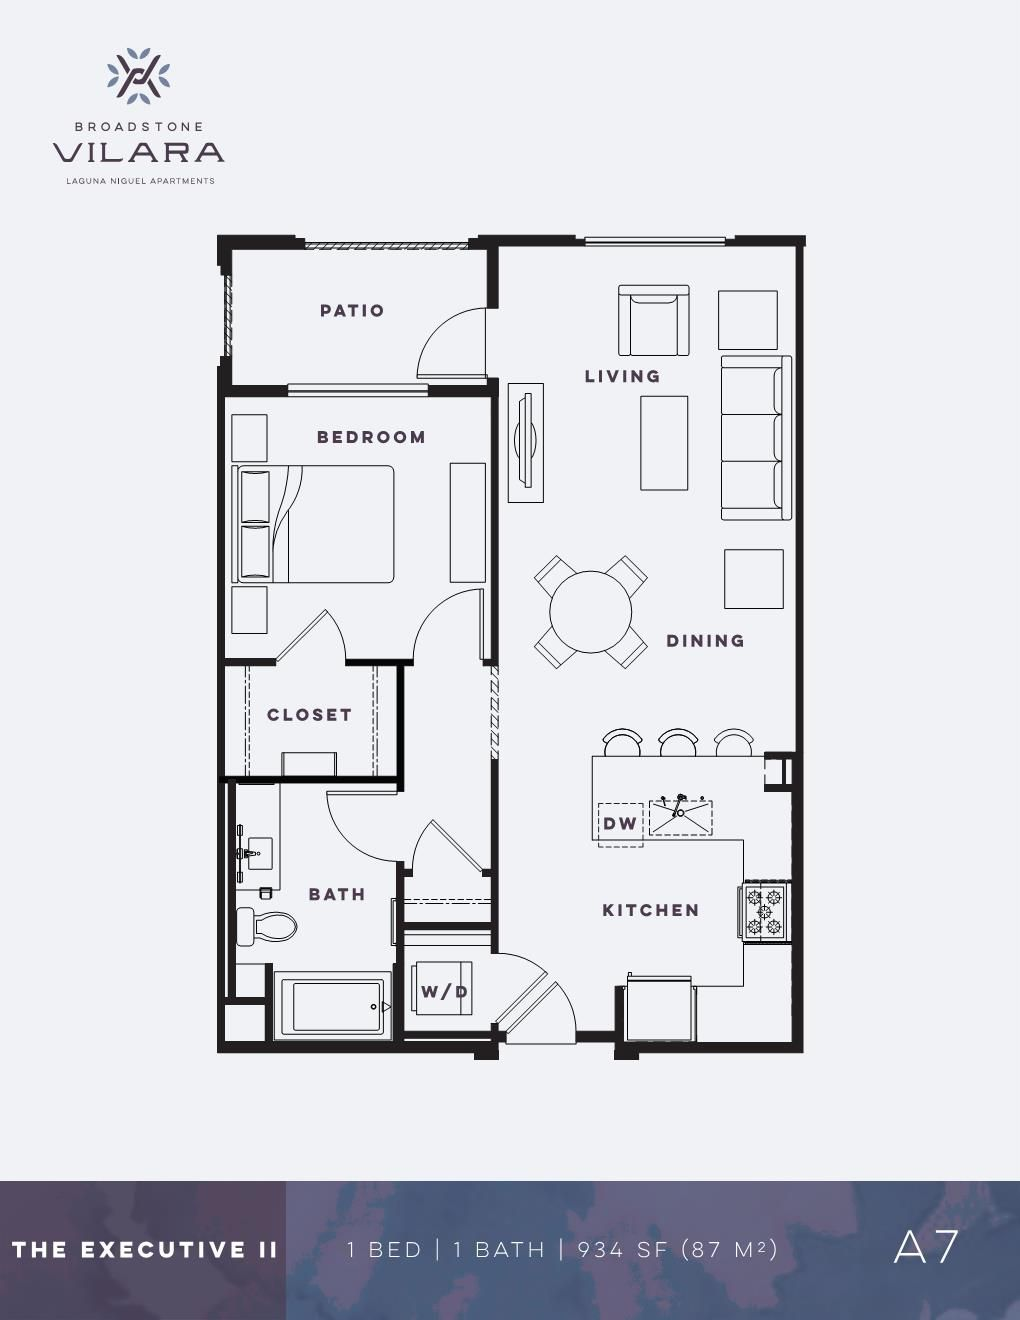 One Bedroom Apartment The Executive Ii Broadstone Vilara Floor Plans Apartment Floor Plans One Bedroom Apartment